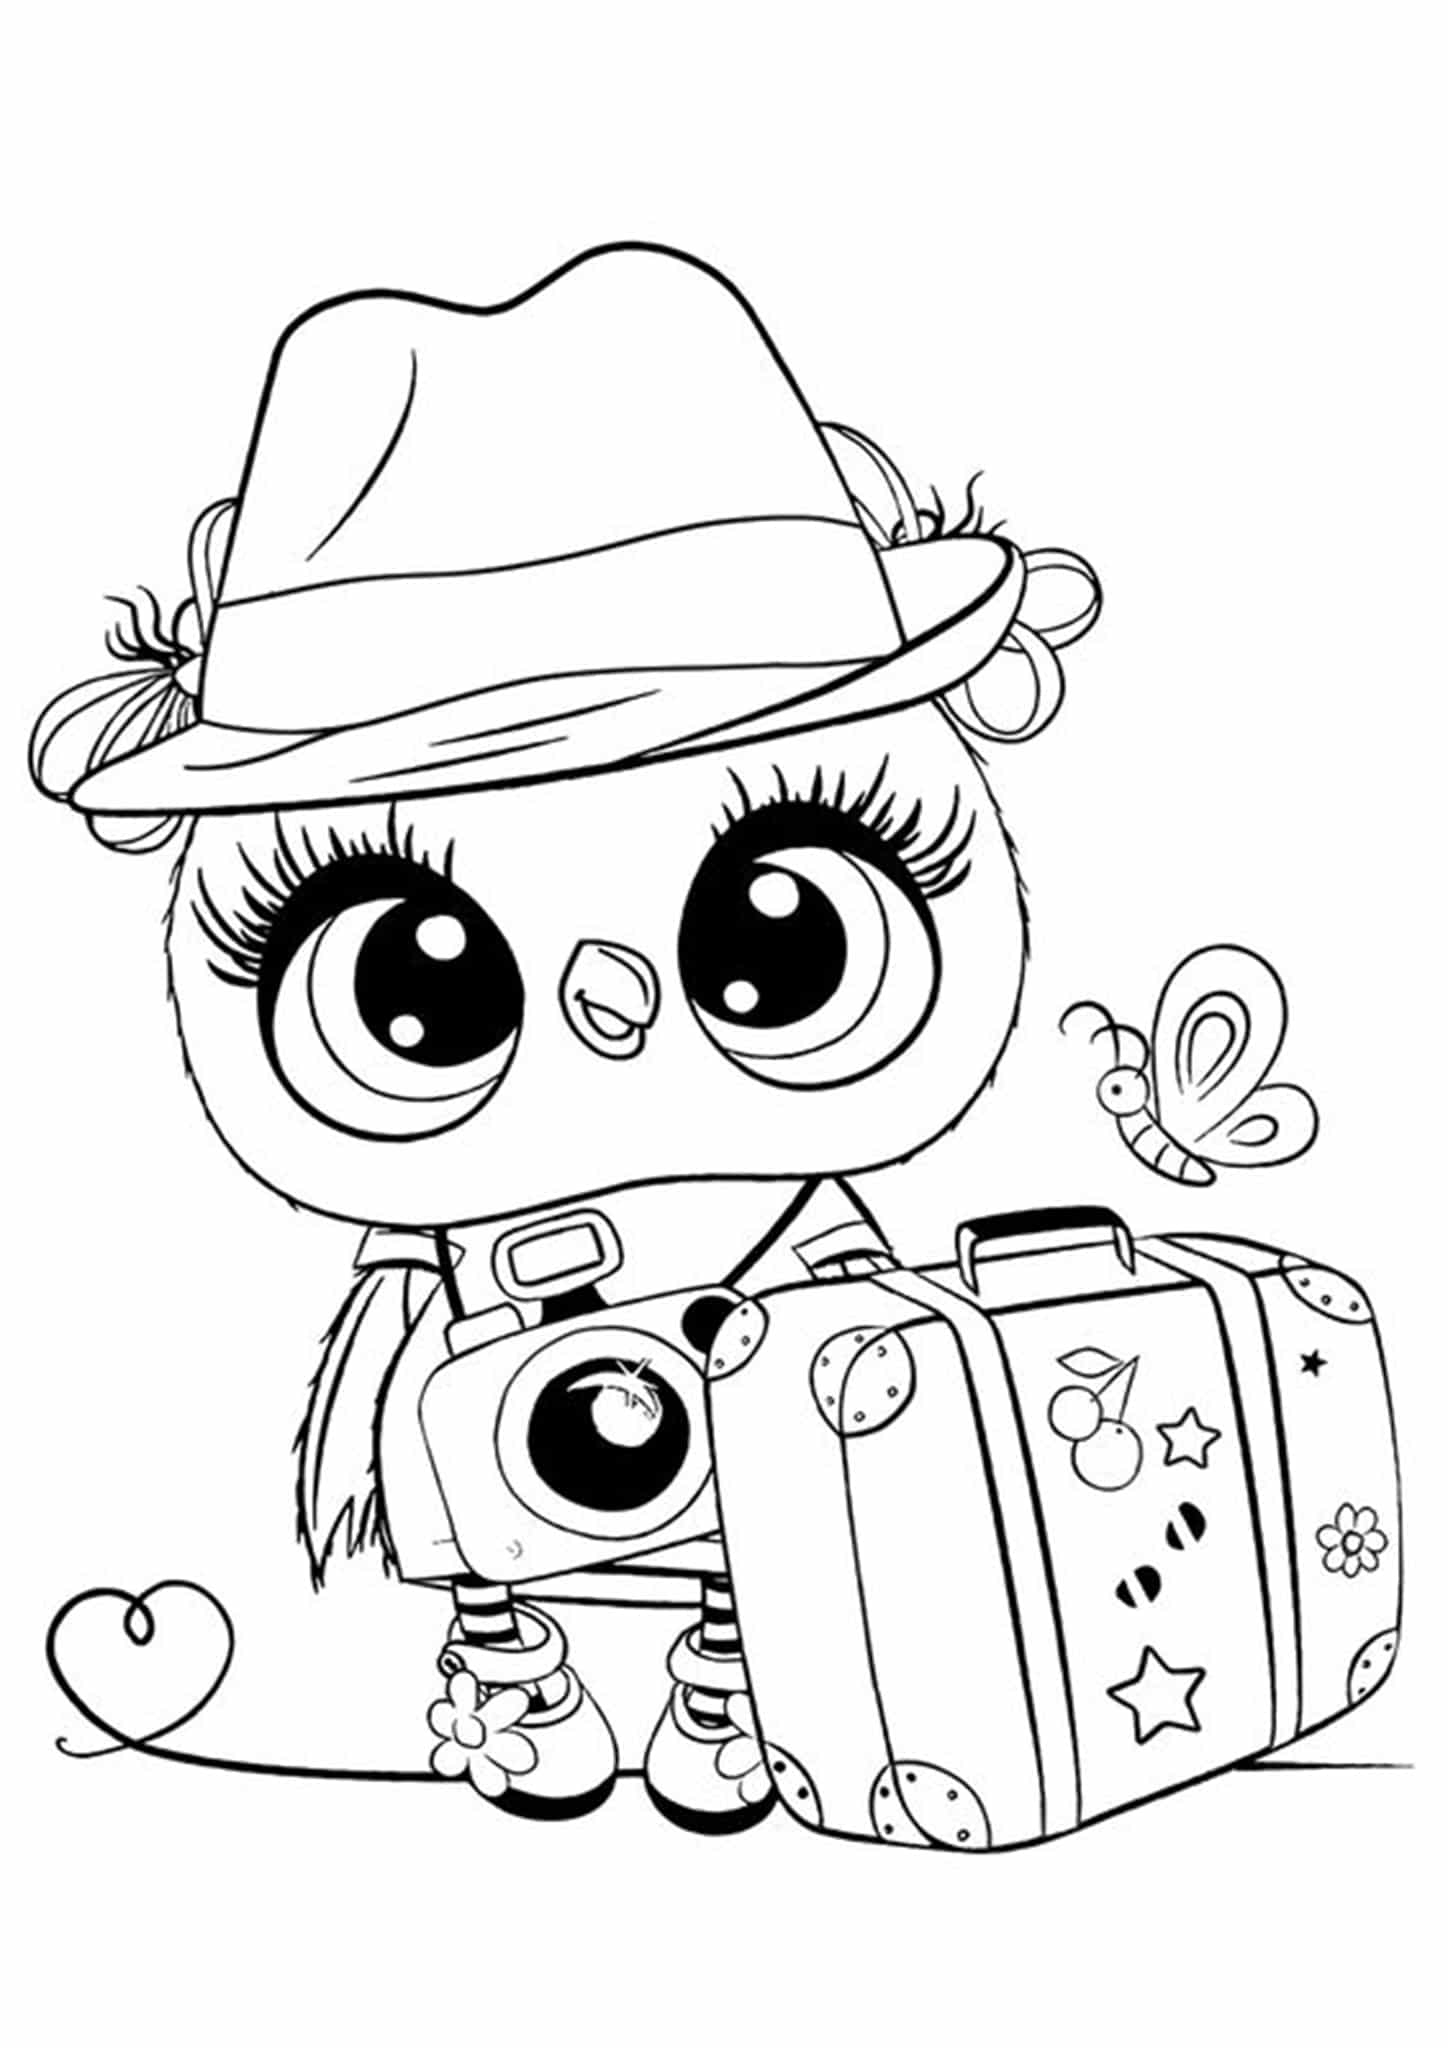 printable owl images free easy to print owl coloring pages tulamama images owl printable